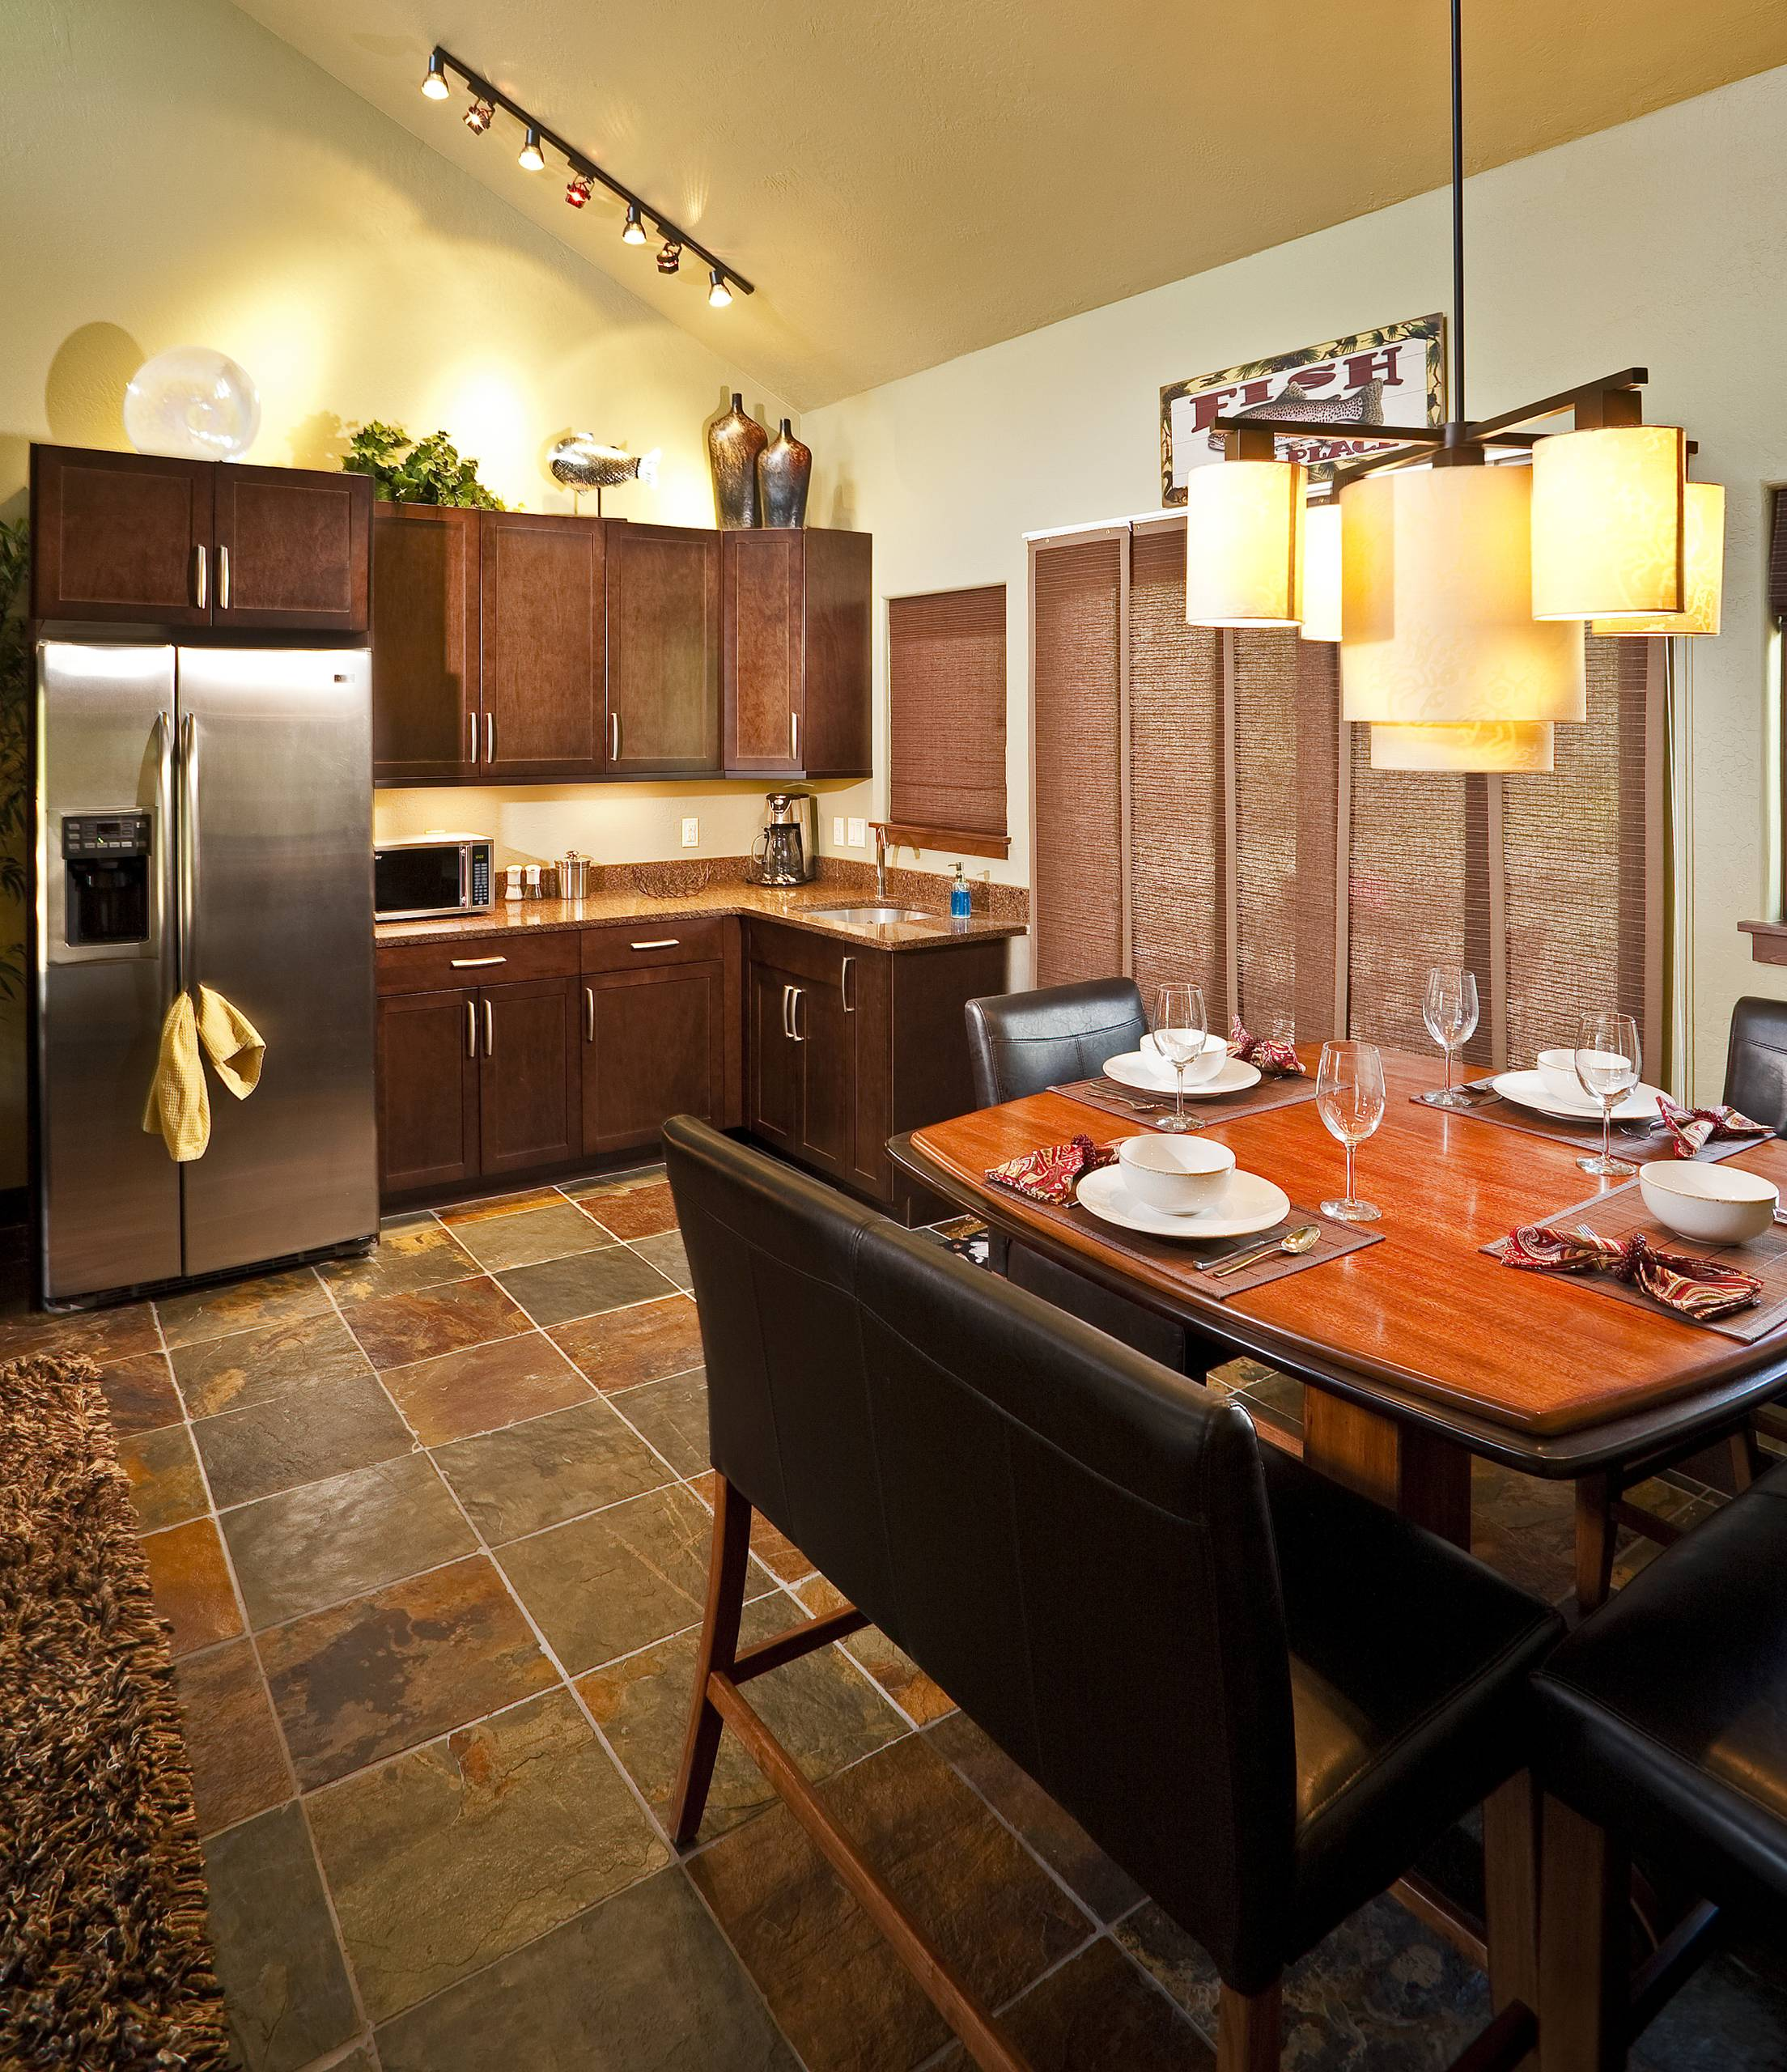 Certified Luxury Builders - Veritas Fine Homes Inc - Durango, CO - Cabin Guest H